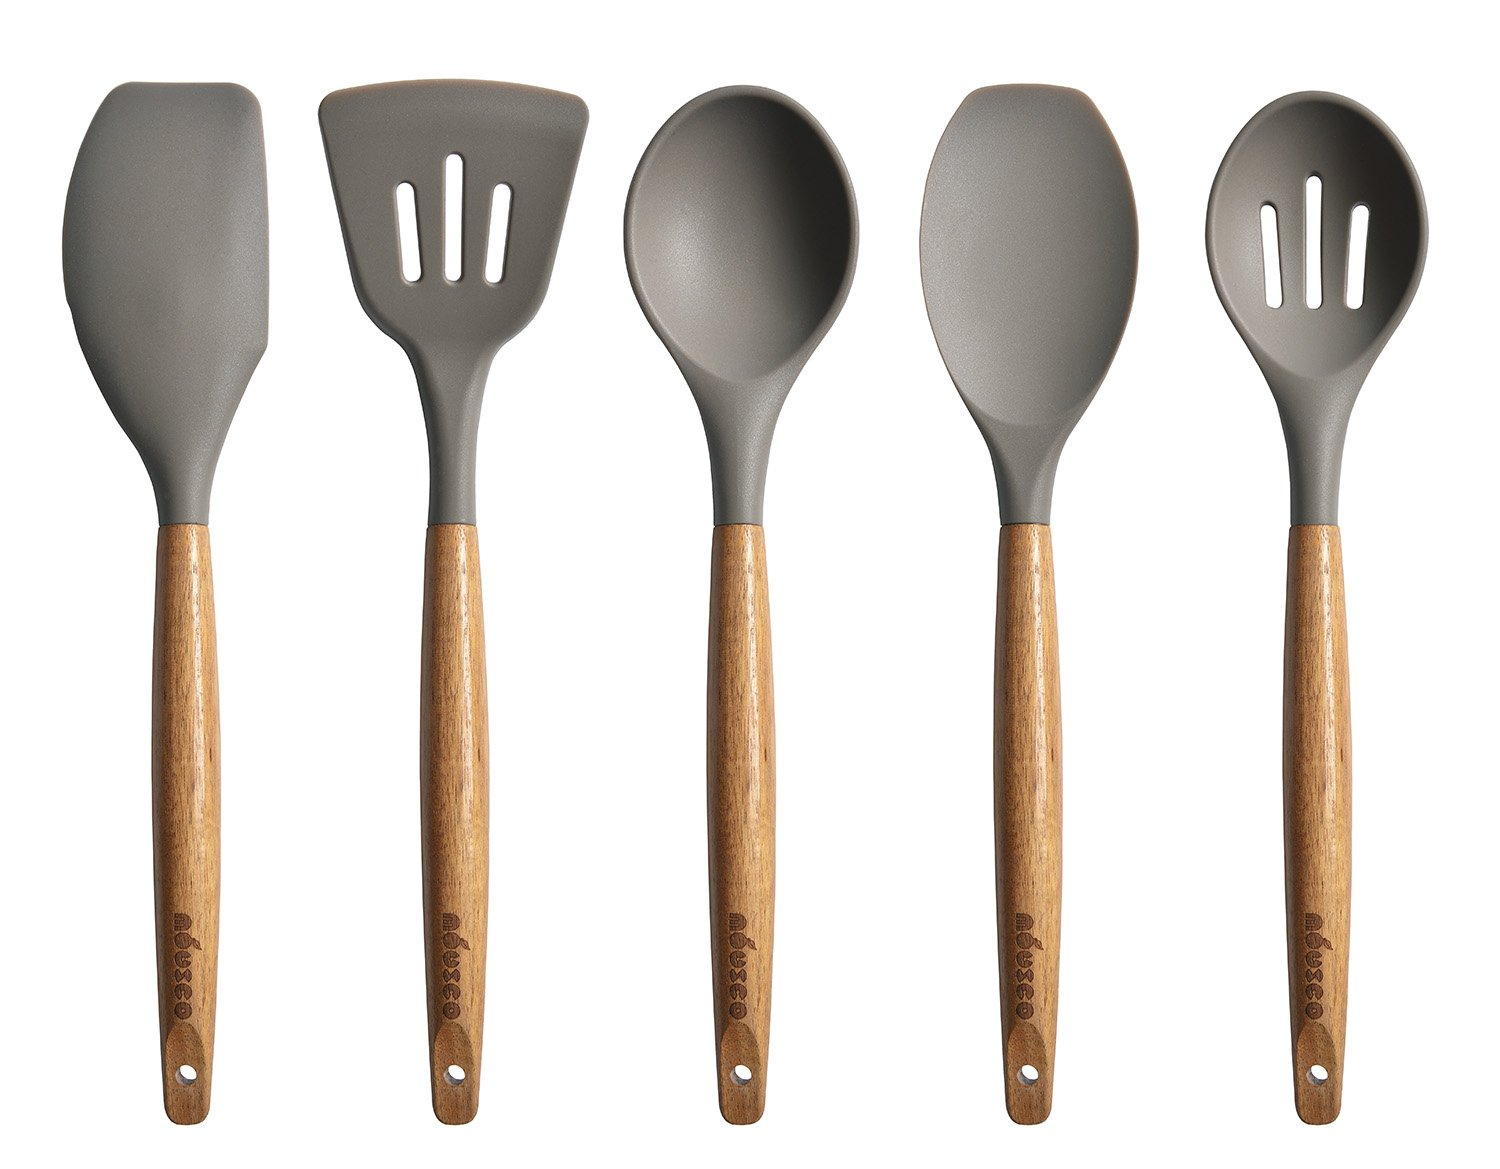 Miusco 5 Piece Silicone Cooking Utensil Set with Natural Acacia Hard Wood Handle by Miusco